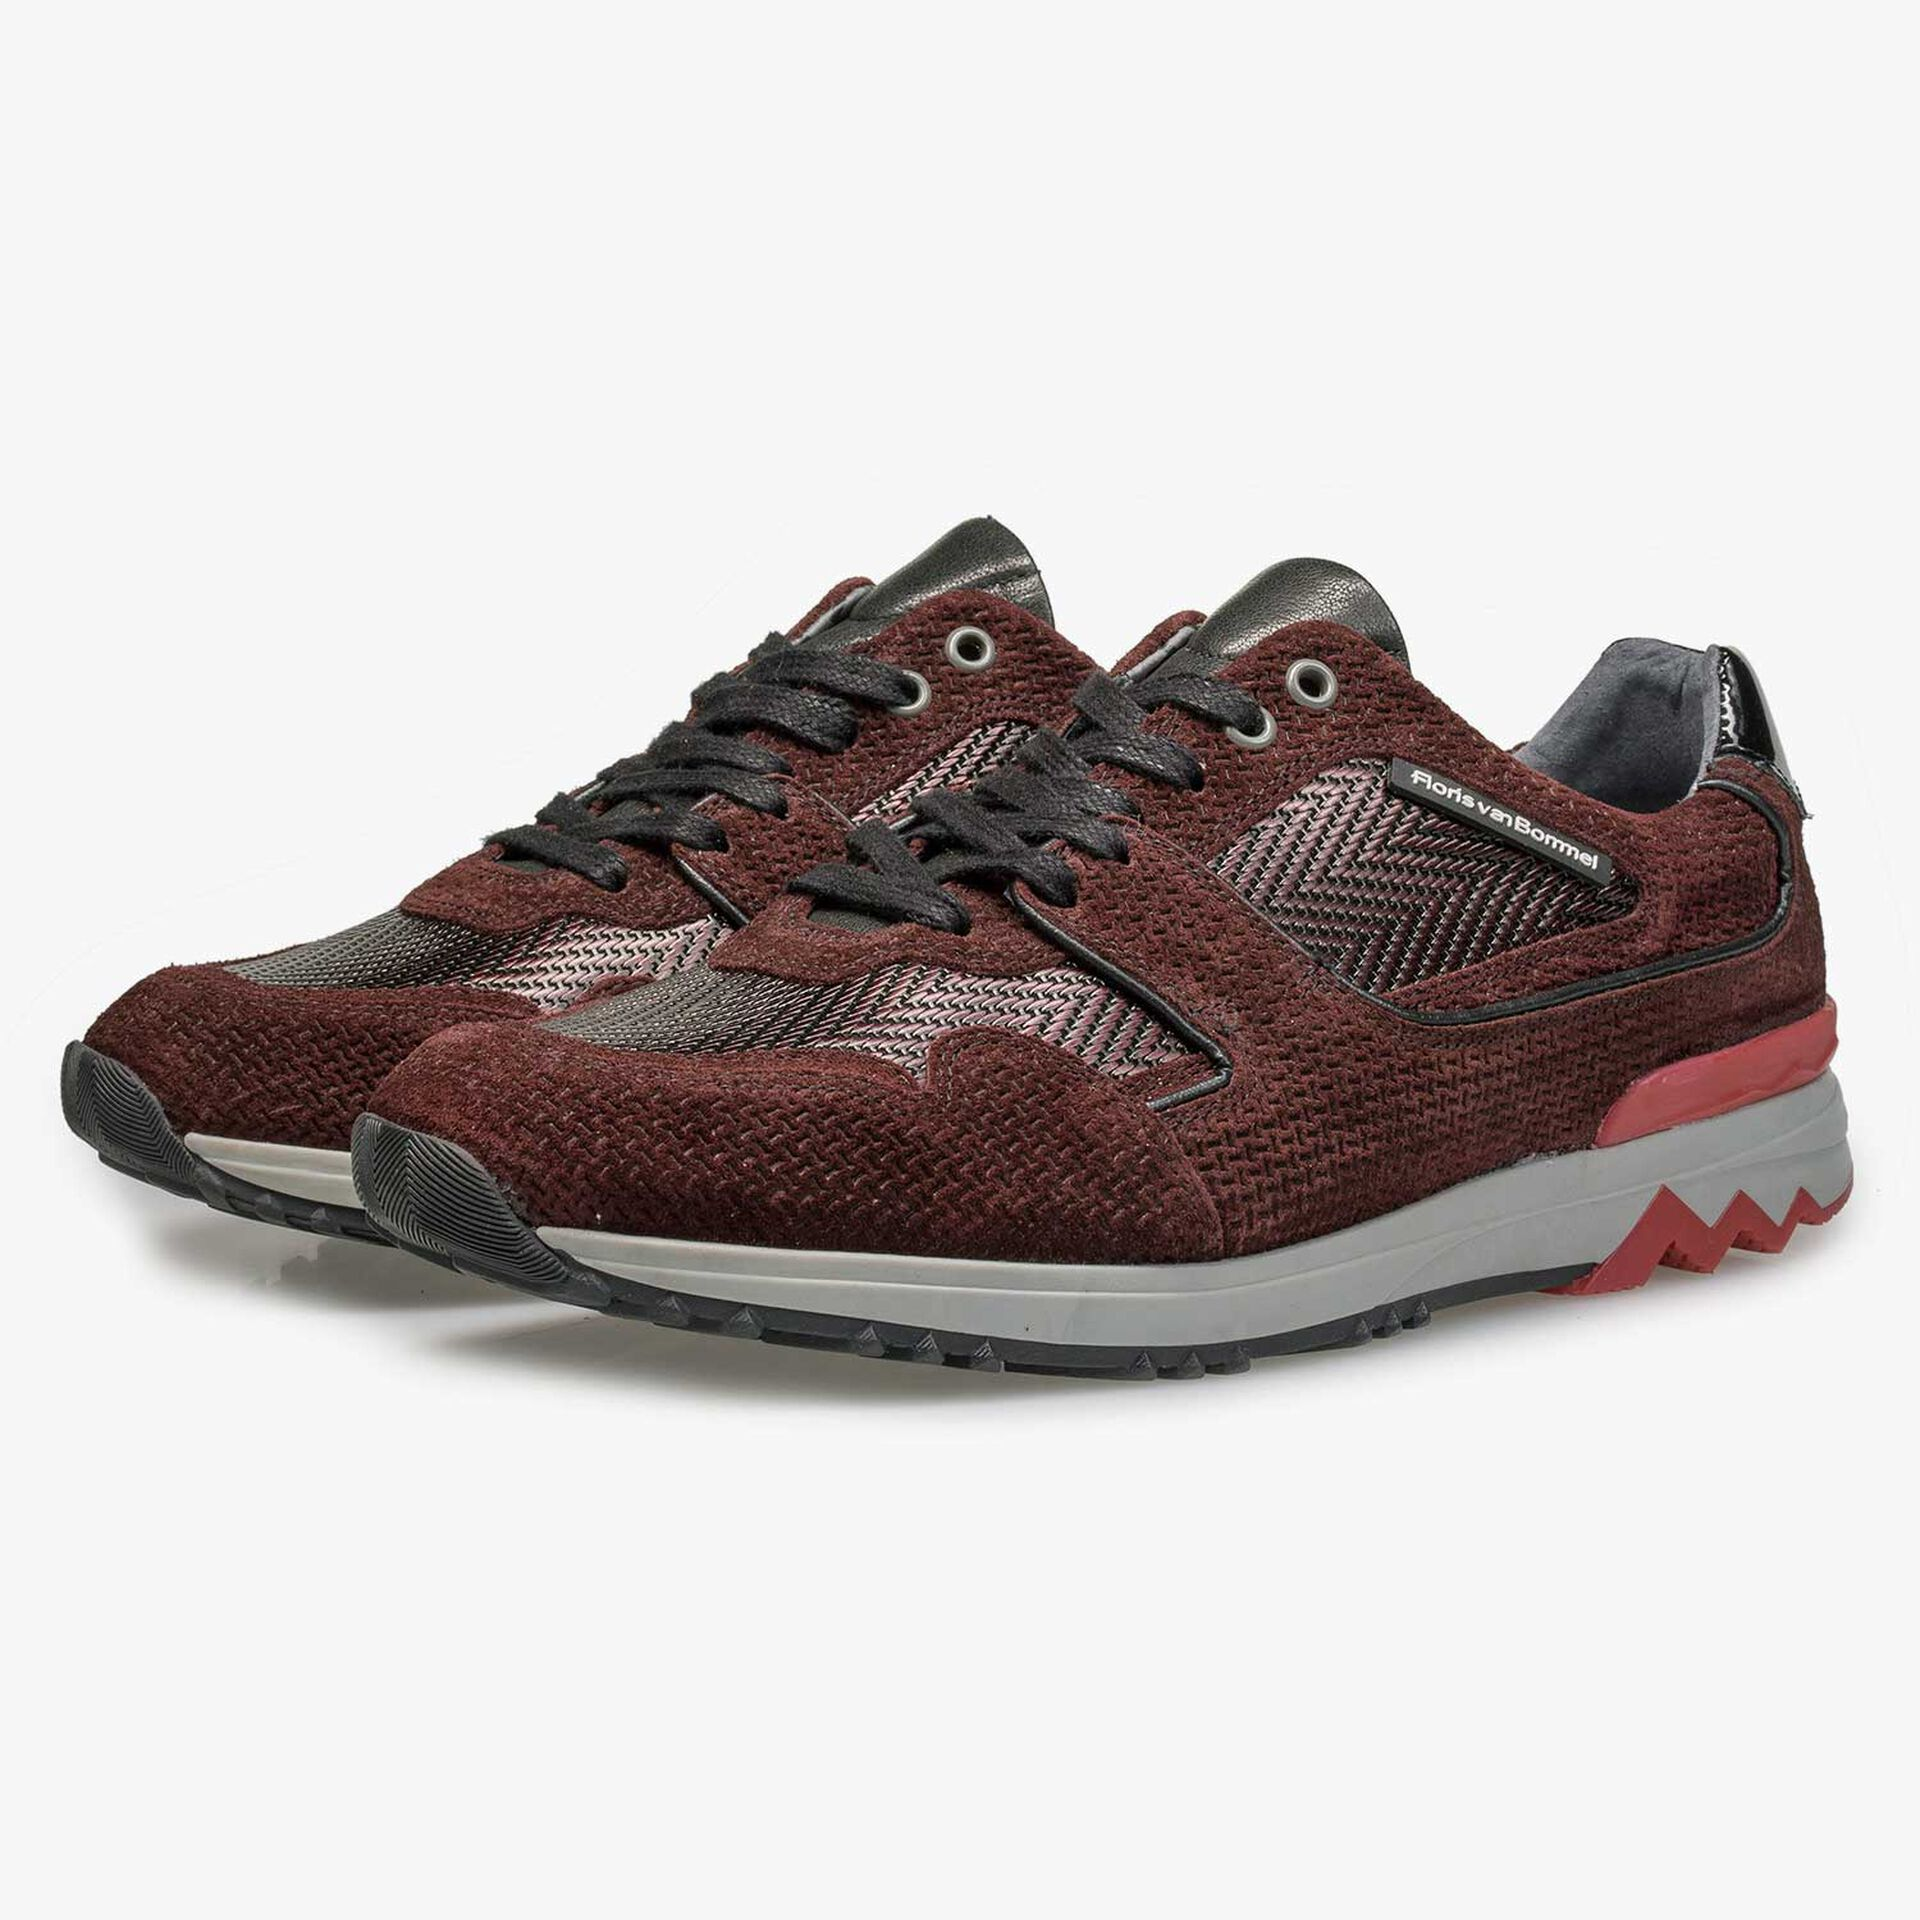 Burgundy red leather sneaker with metallic print